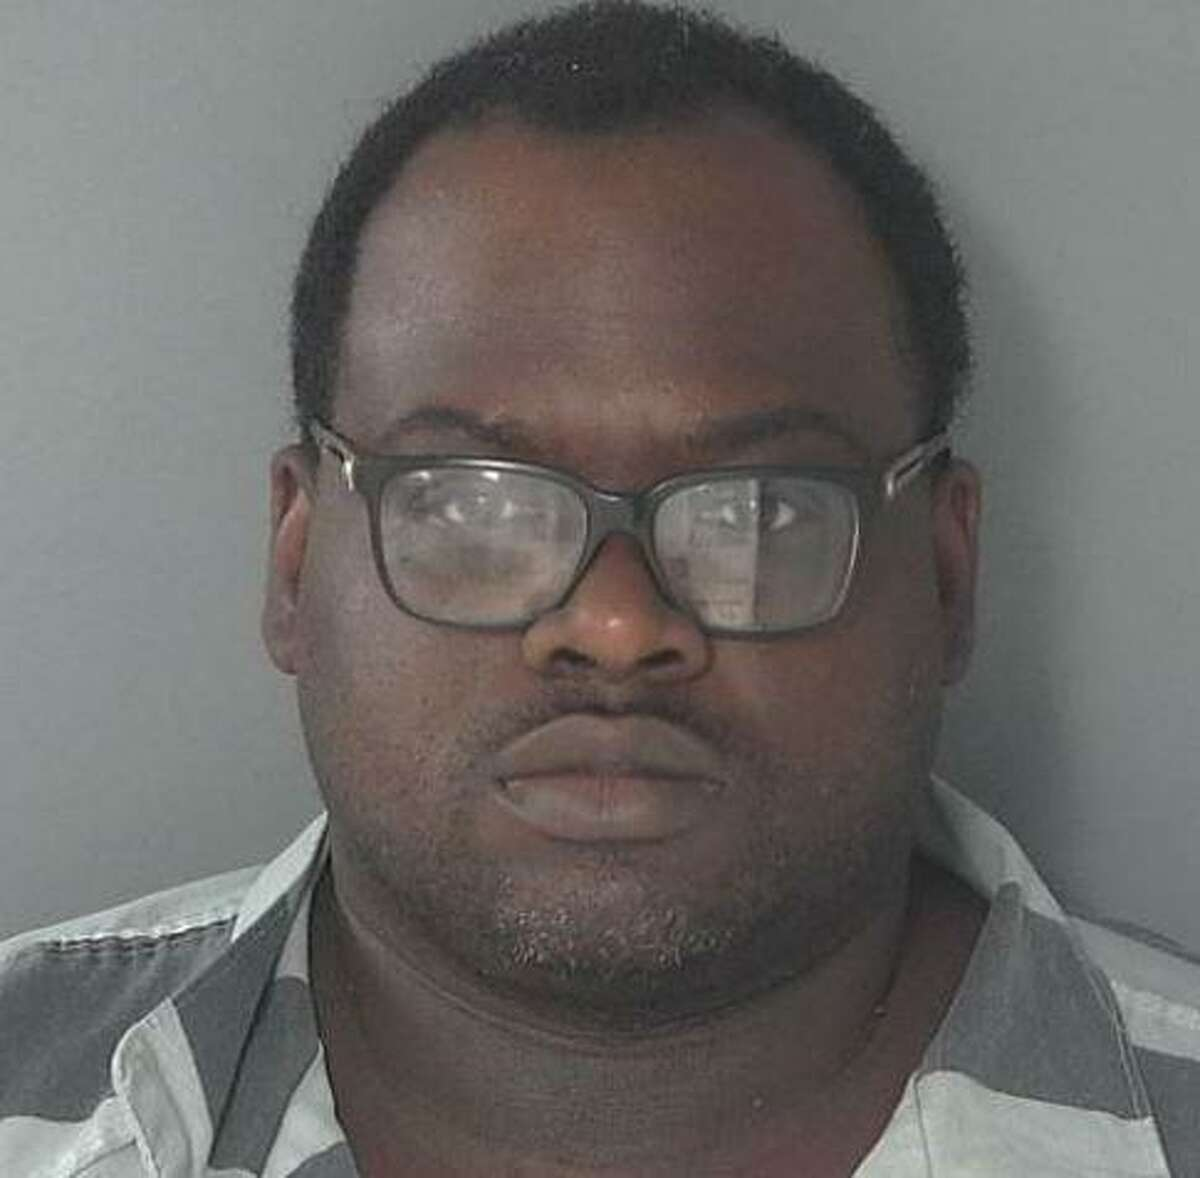 Dewayne Lee Waldrup, 40, of Houston, was sentenced Thursday to 50 years in prison on a drug possession conviction.